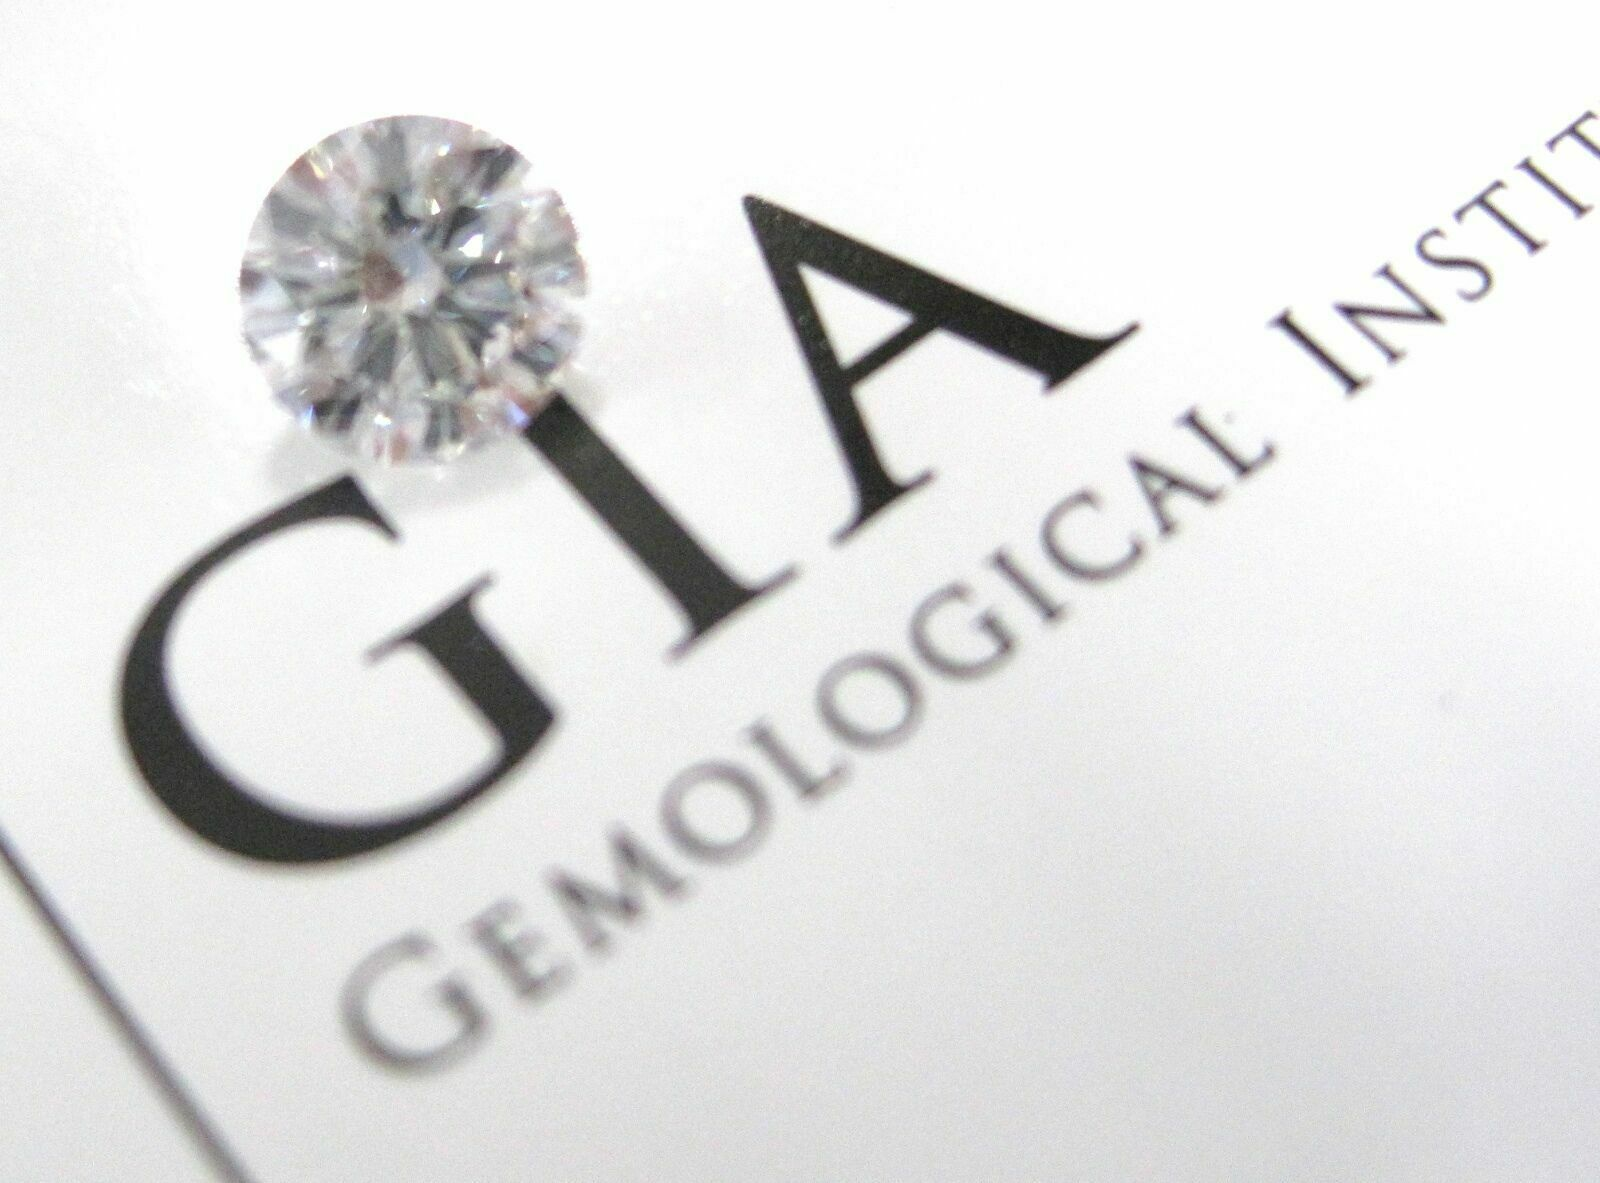 GIA CERTIFIED 1.02 CARATS D-IF ROUND BRILLIANT LOOSE DIAMOND(Revised Price)